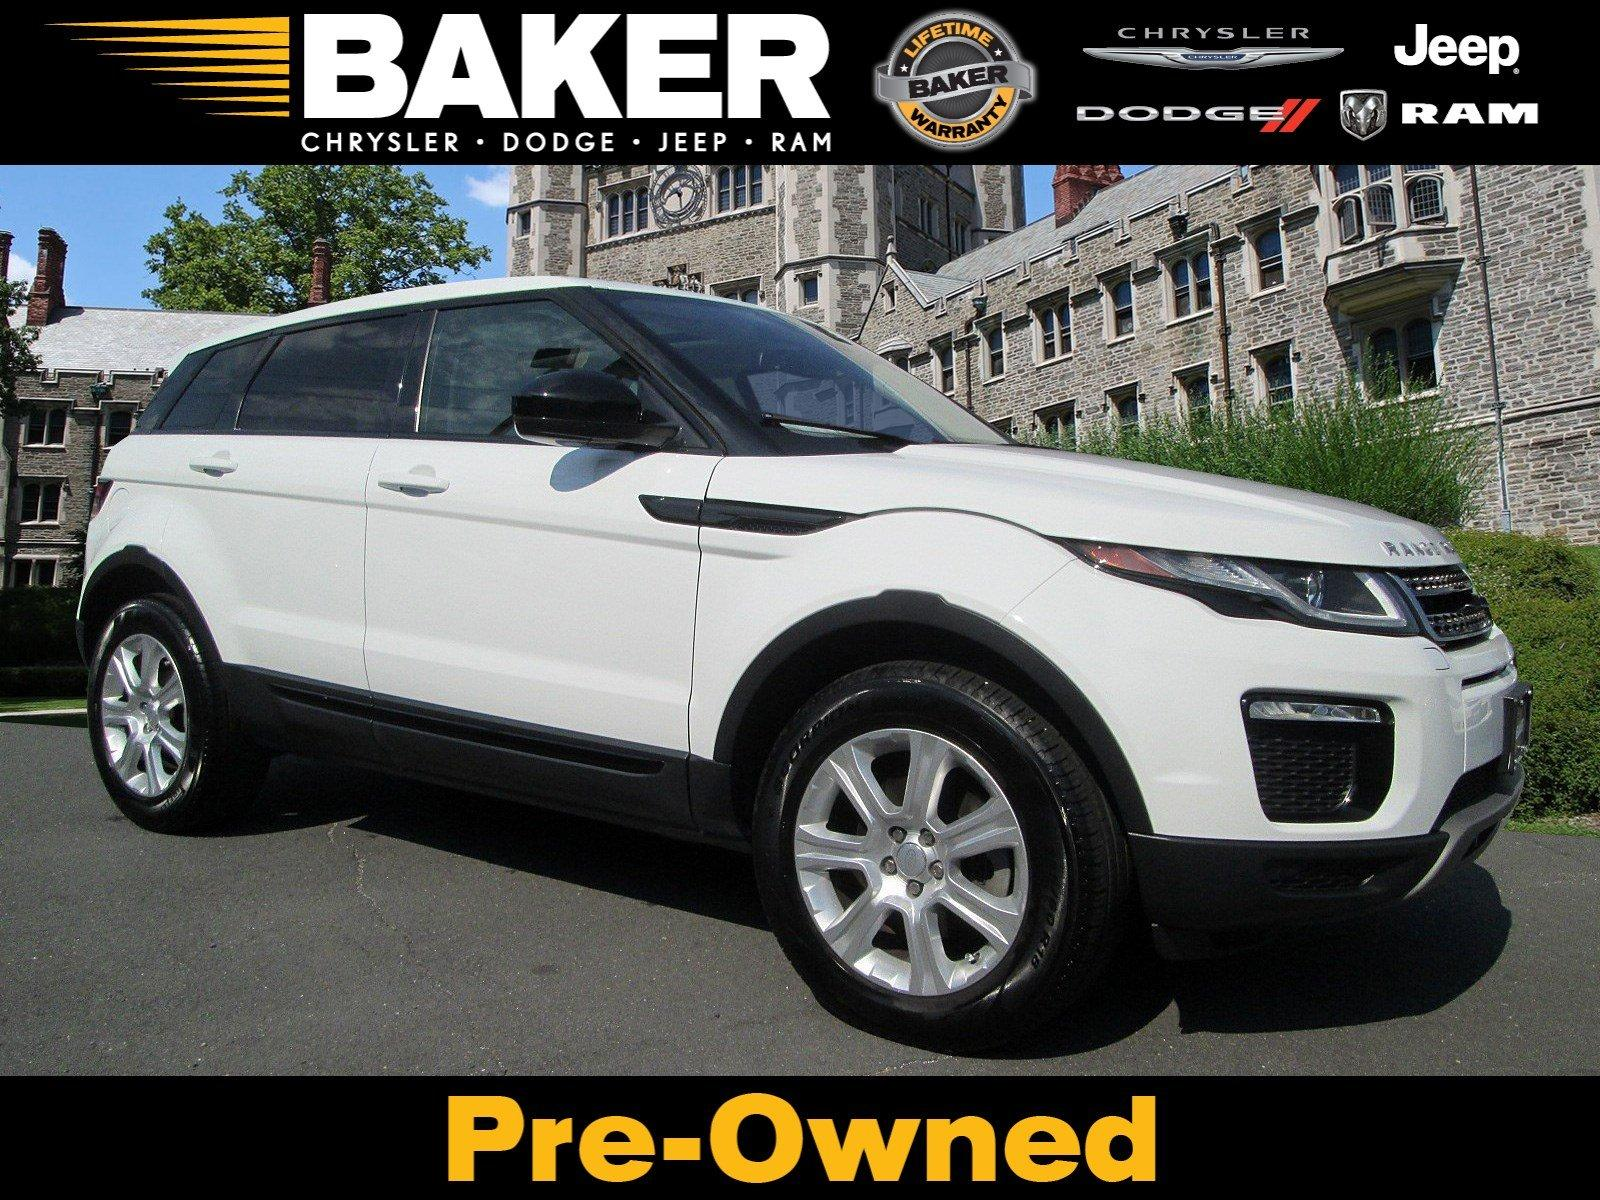 Used 2016 Land Rover Range Rover Evoque SE Premium for sale Sold at Victory Lotus in Princeton NJ 08540 1